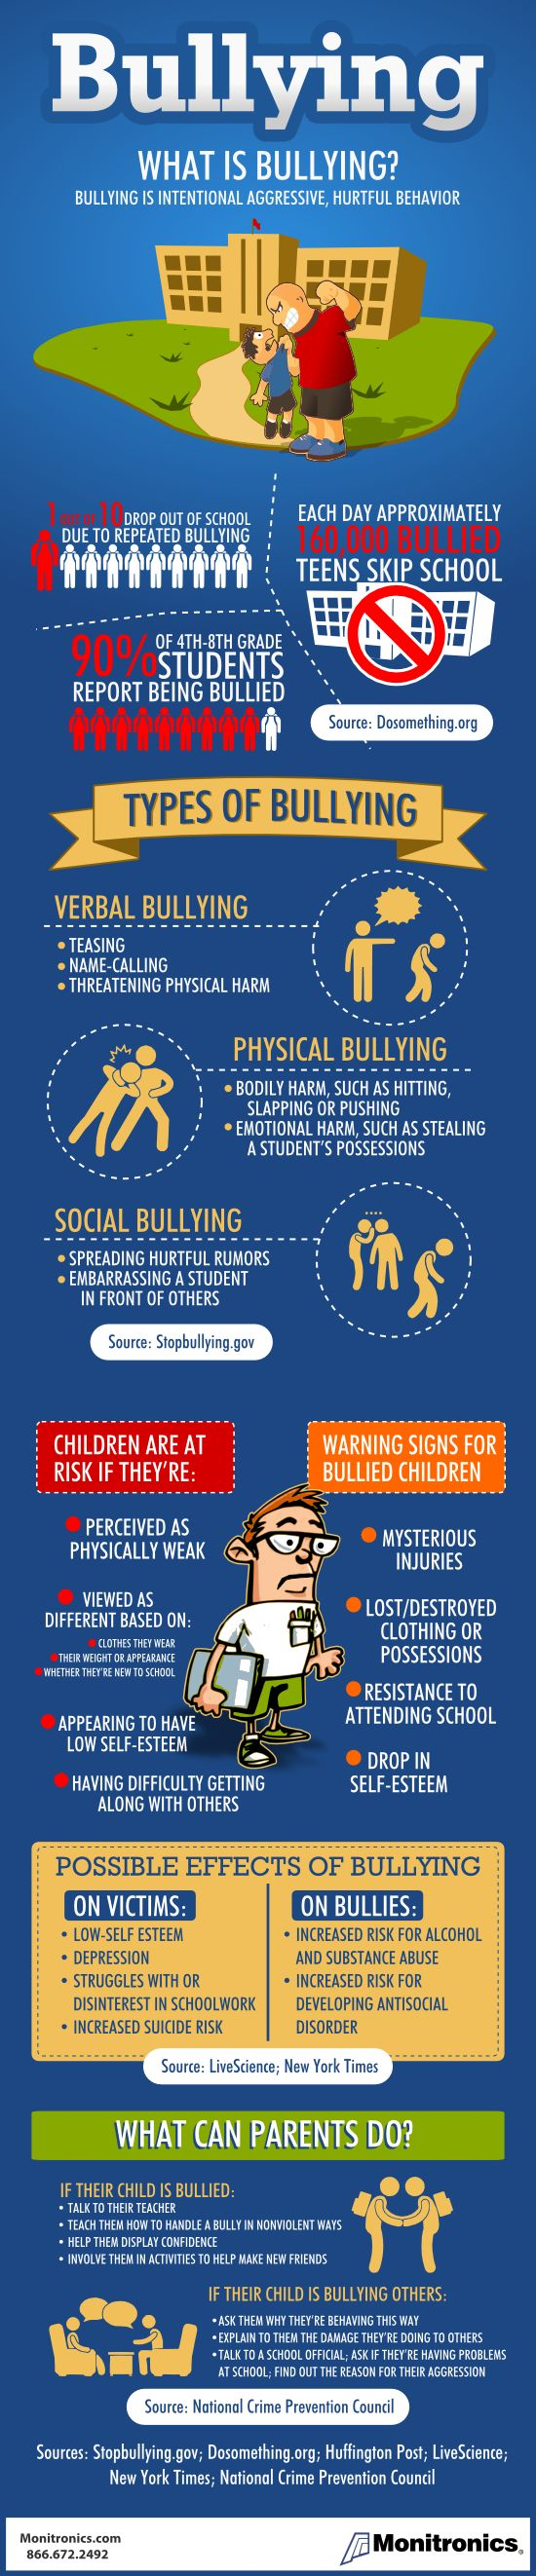 Bullying: what is bullying? Bullying is intentional aggressive, hurtful behavior! This month marks the eighth annual National Bullying Prevention Month – a campaign dedicated to educating and raising awareness of bullying and how it can be prevented. Bullying can ruin the lives of those affected and victims are often too scared or embarrassed to speak out. As a parent, carer or teacher, know how to spot the signs....